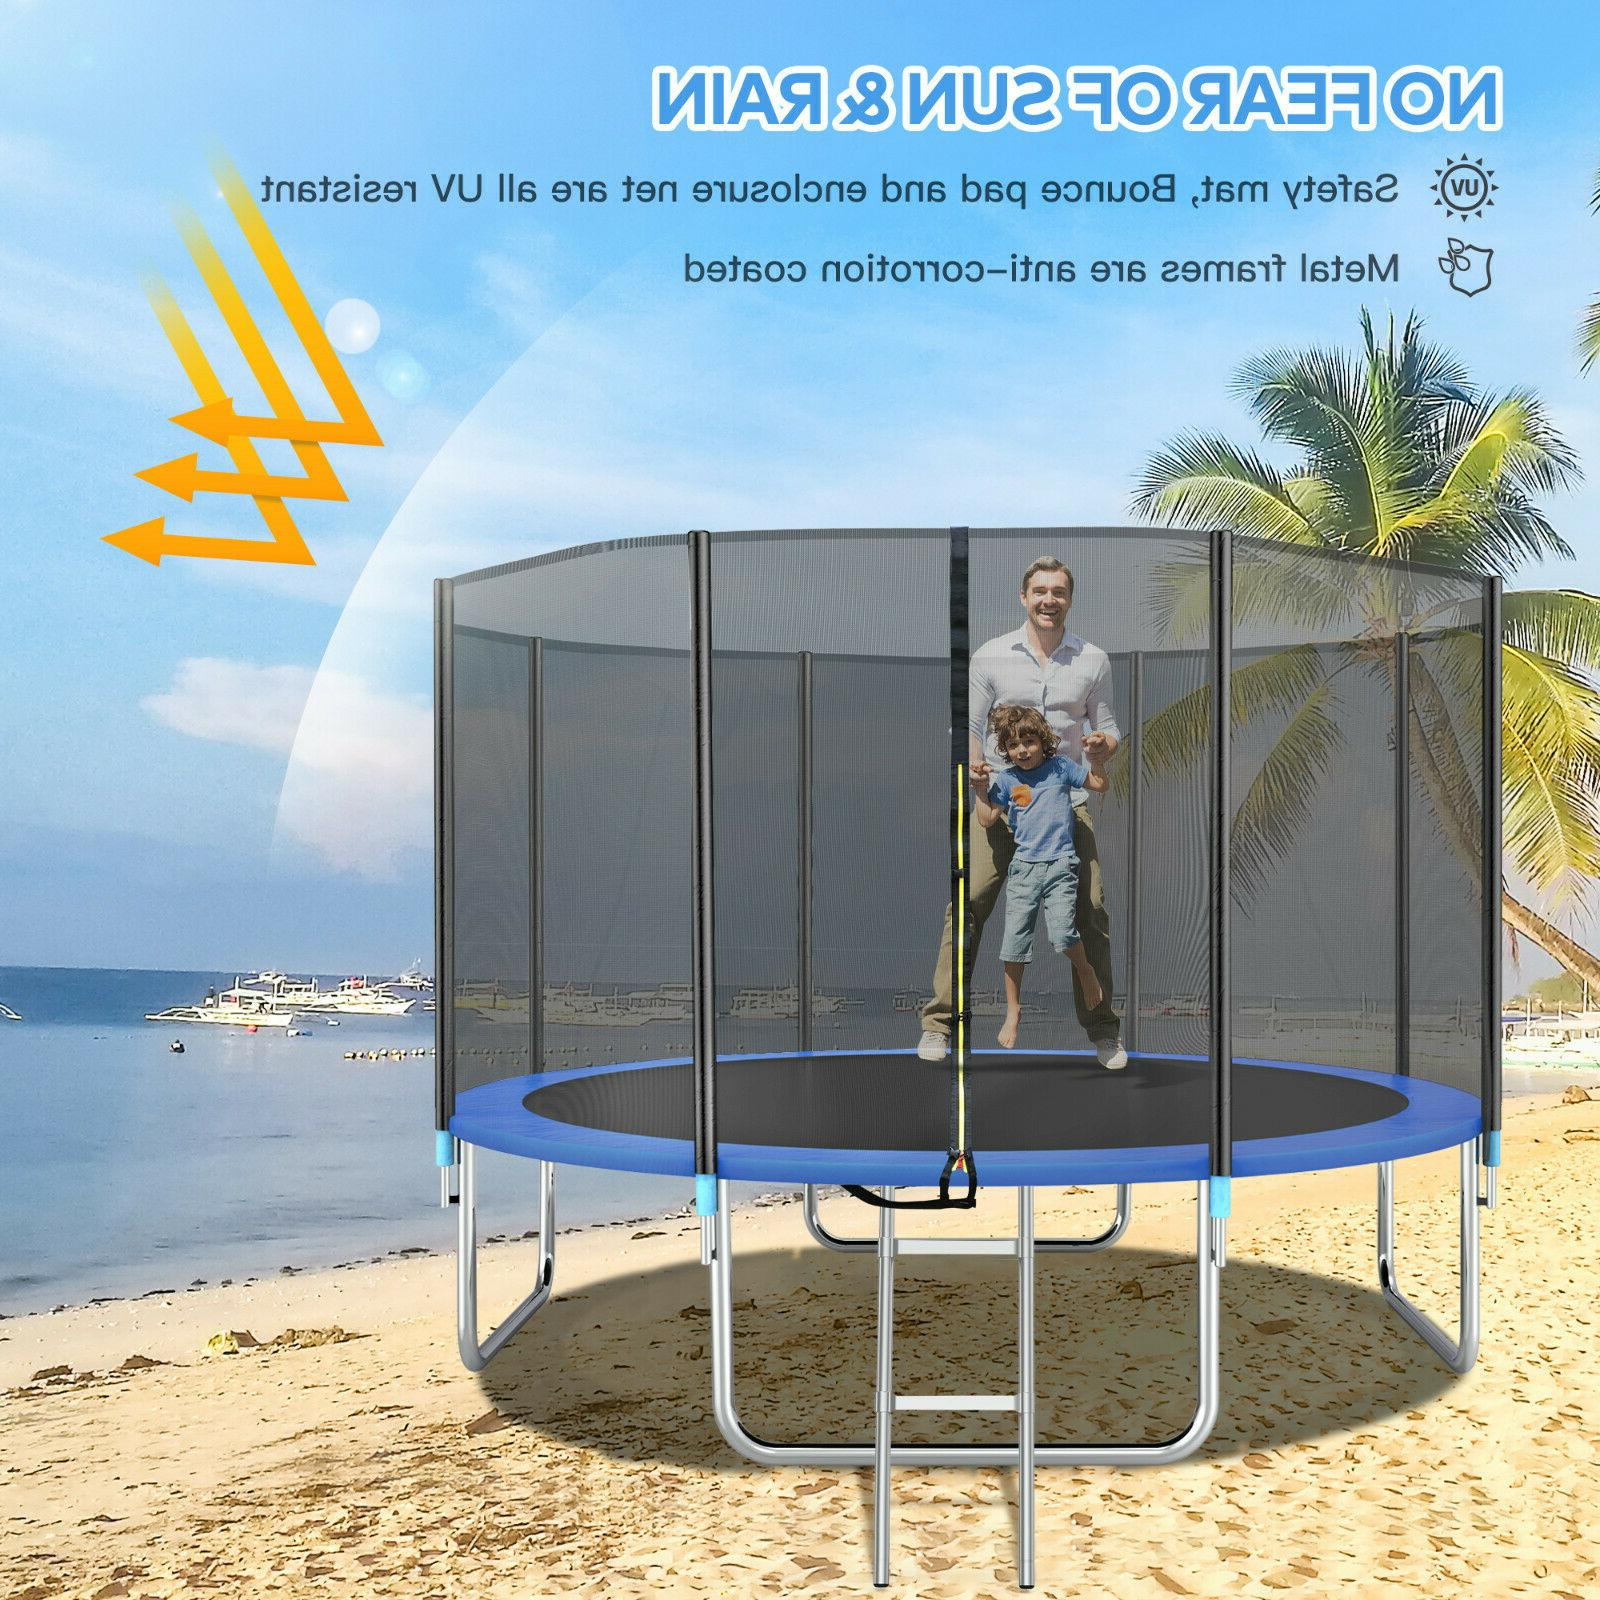 14FT Trampoline with Safety Enclosure Net, and 330LBS Load